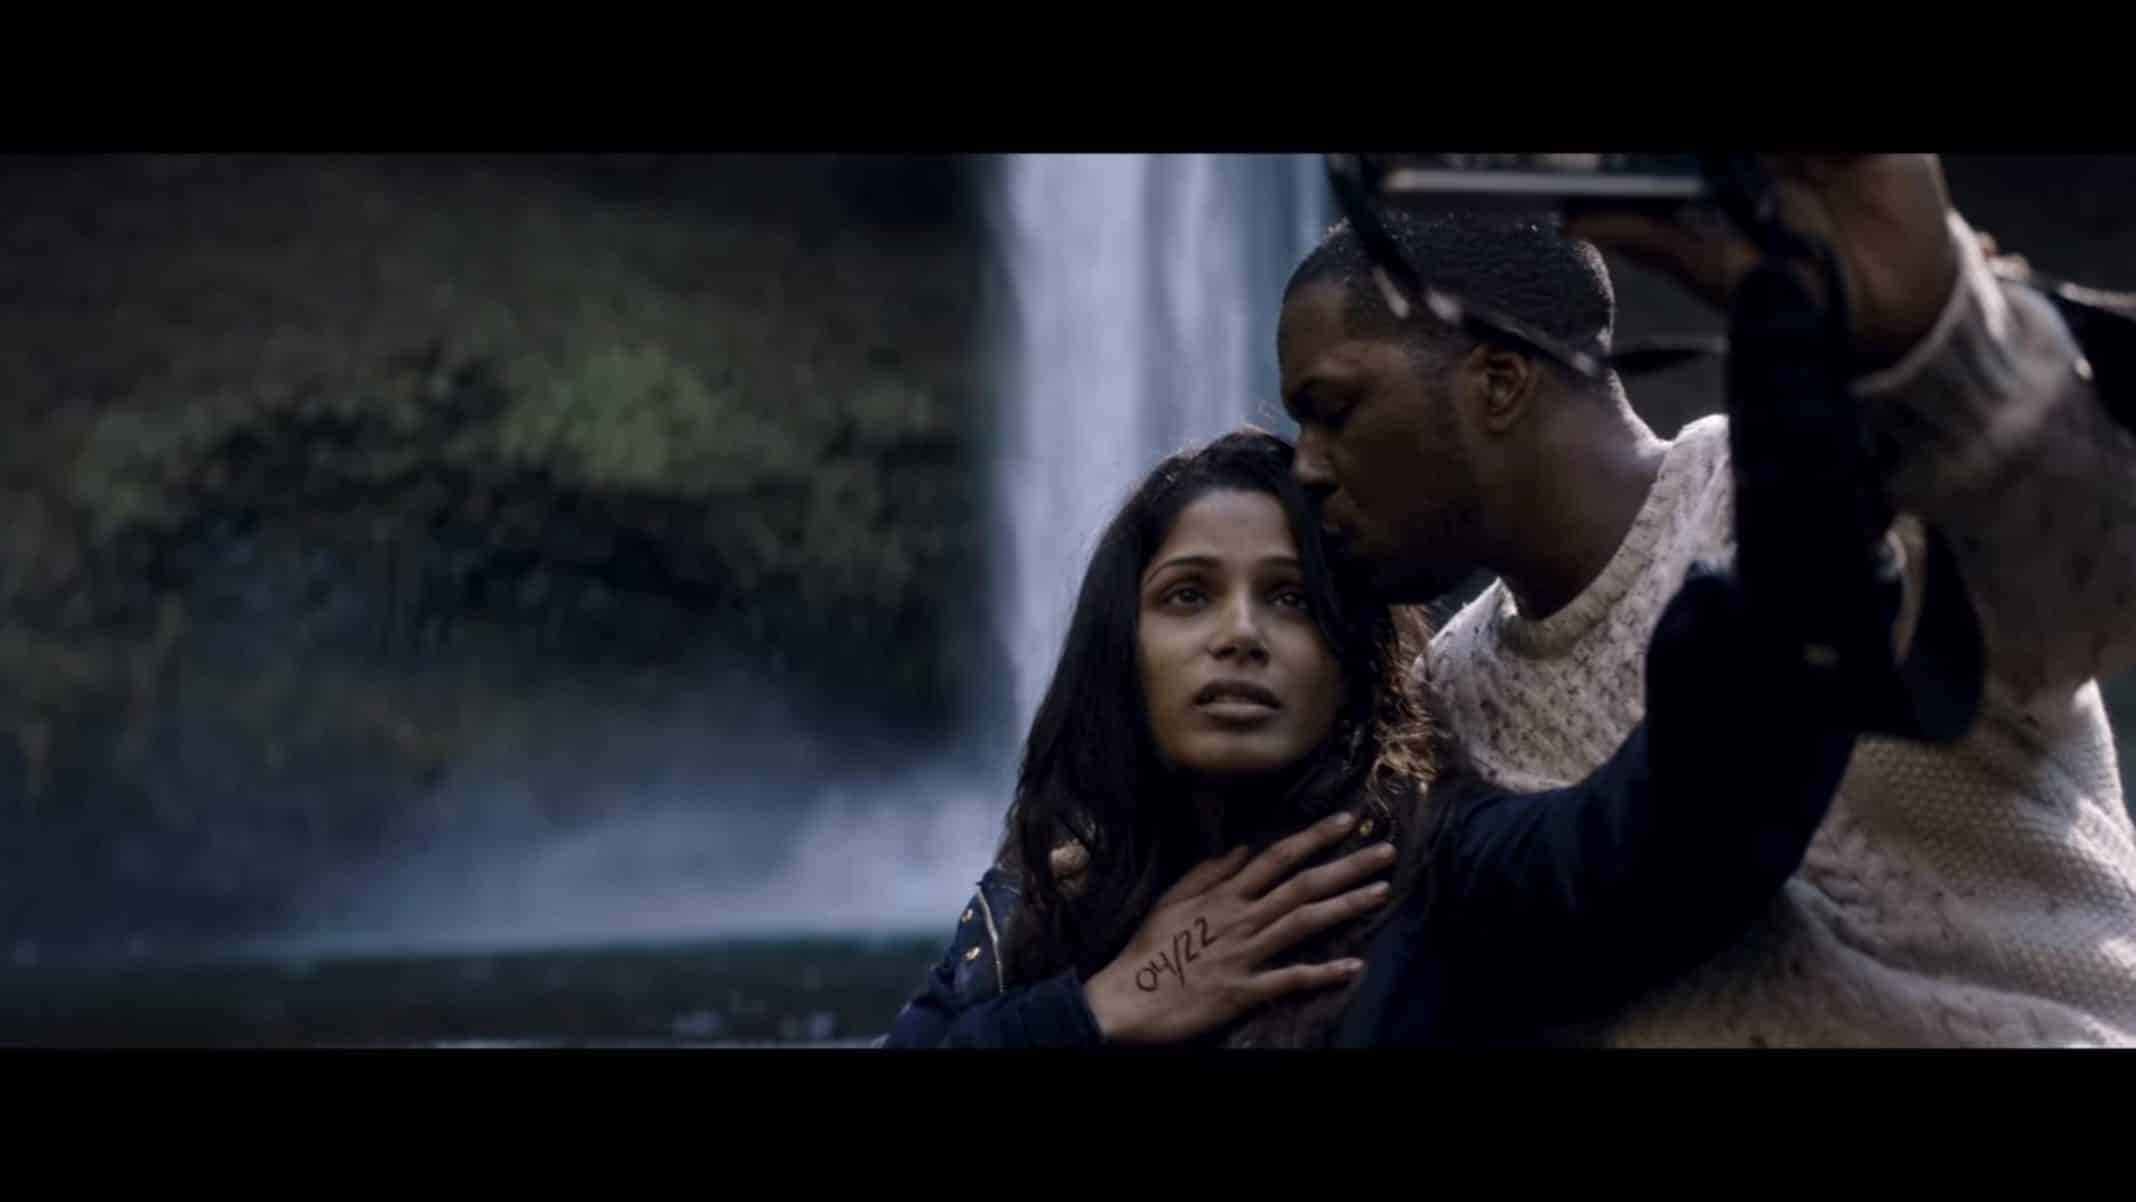 Eva (Frieda Pinto) and Will (Leslie Odom Jr.) in front of a waterfall.